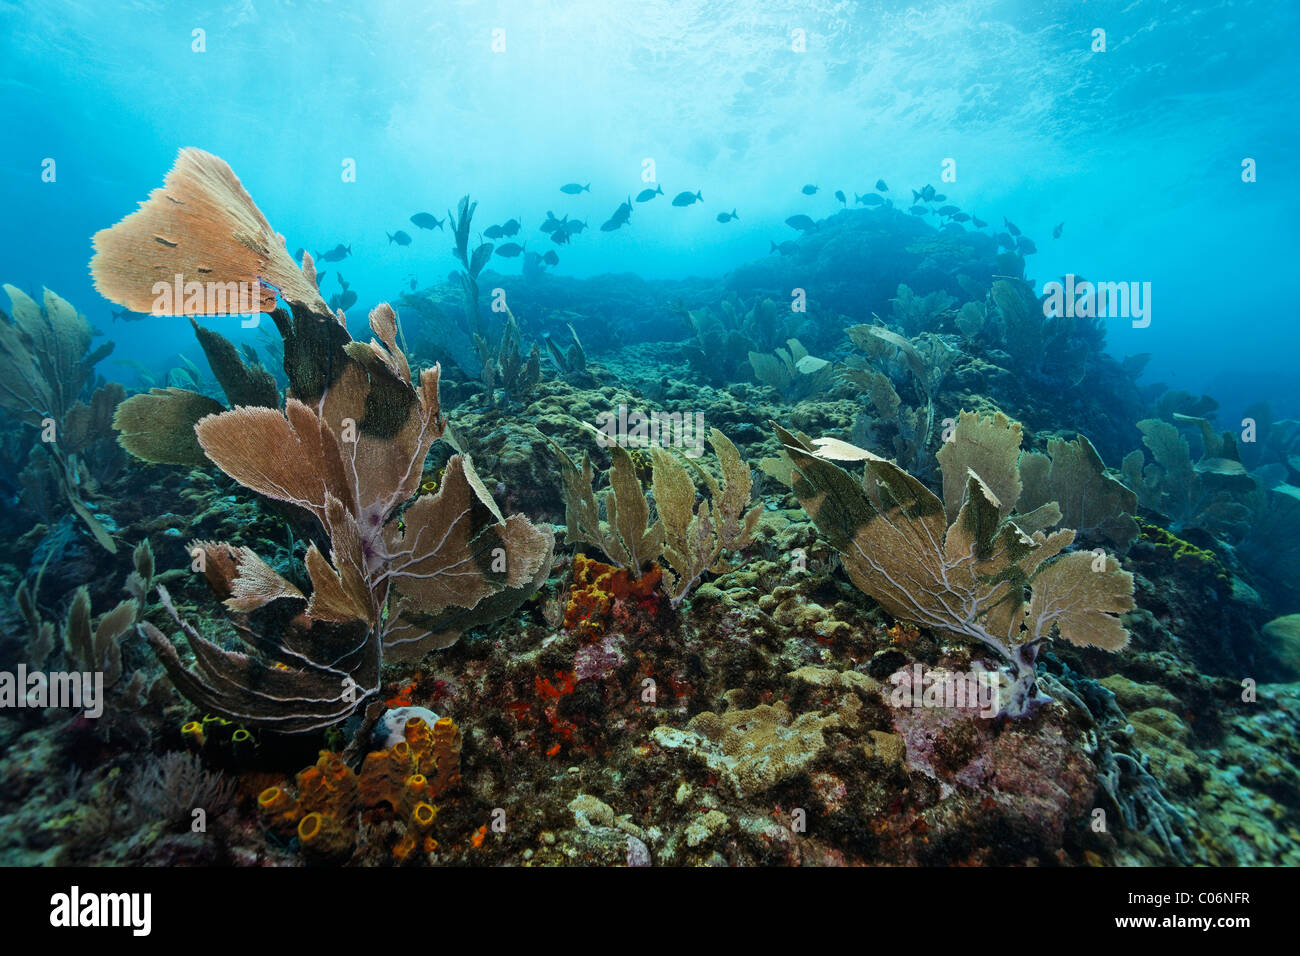 Coral reef in strong waves and currents, Venus sea fan (Gorgonia flabellum), shoal of fish, Bermuda-rudder fish Stock Photo